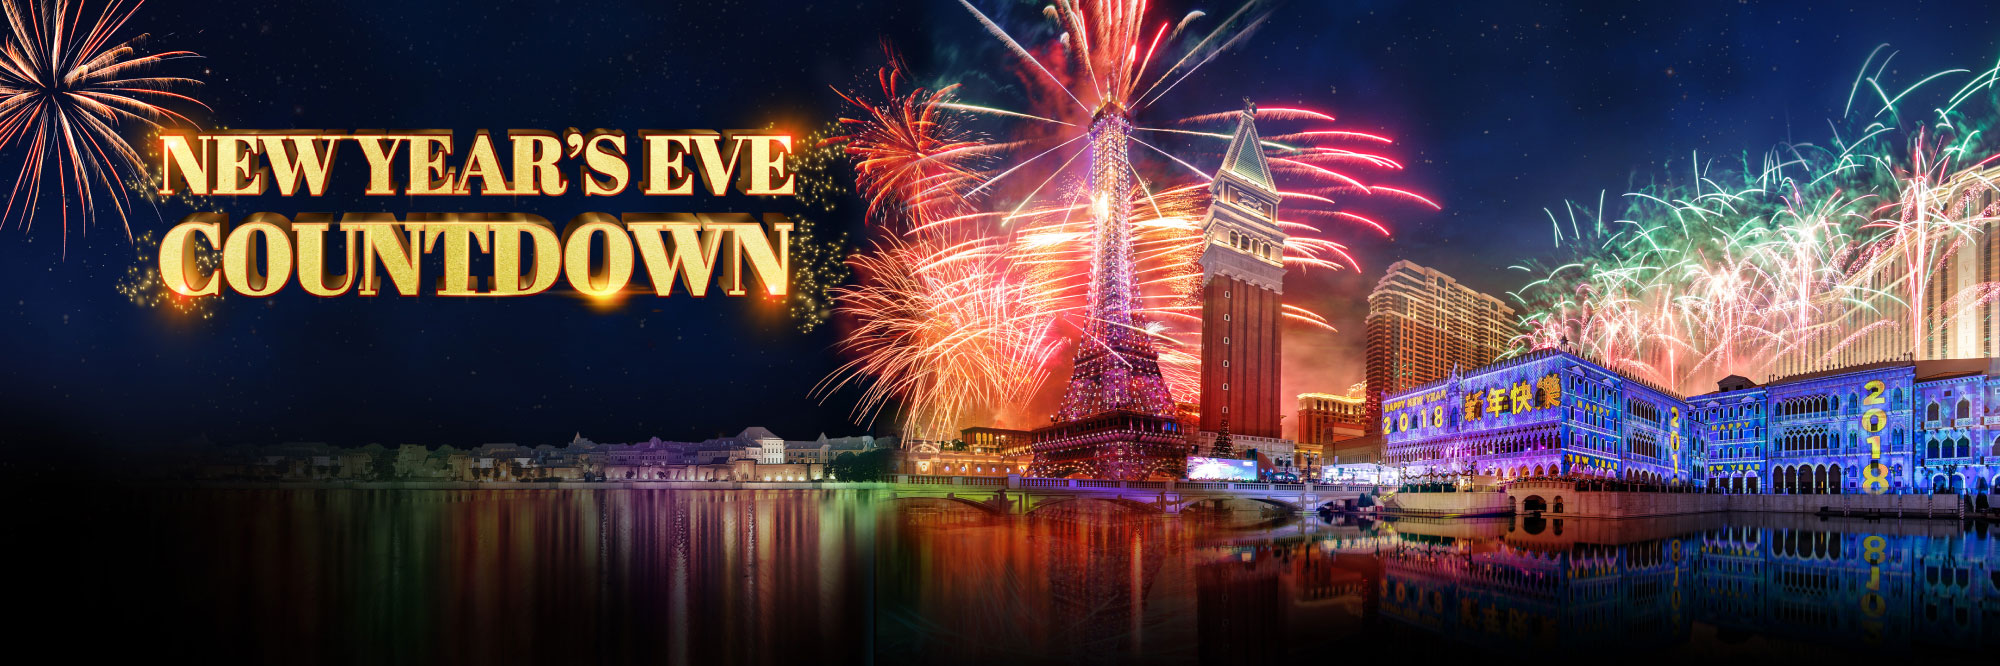 2017 New Year Eve Countdown Event